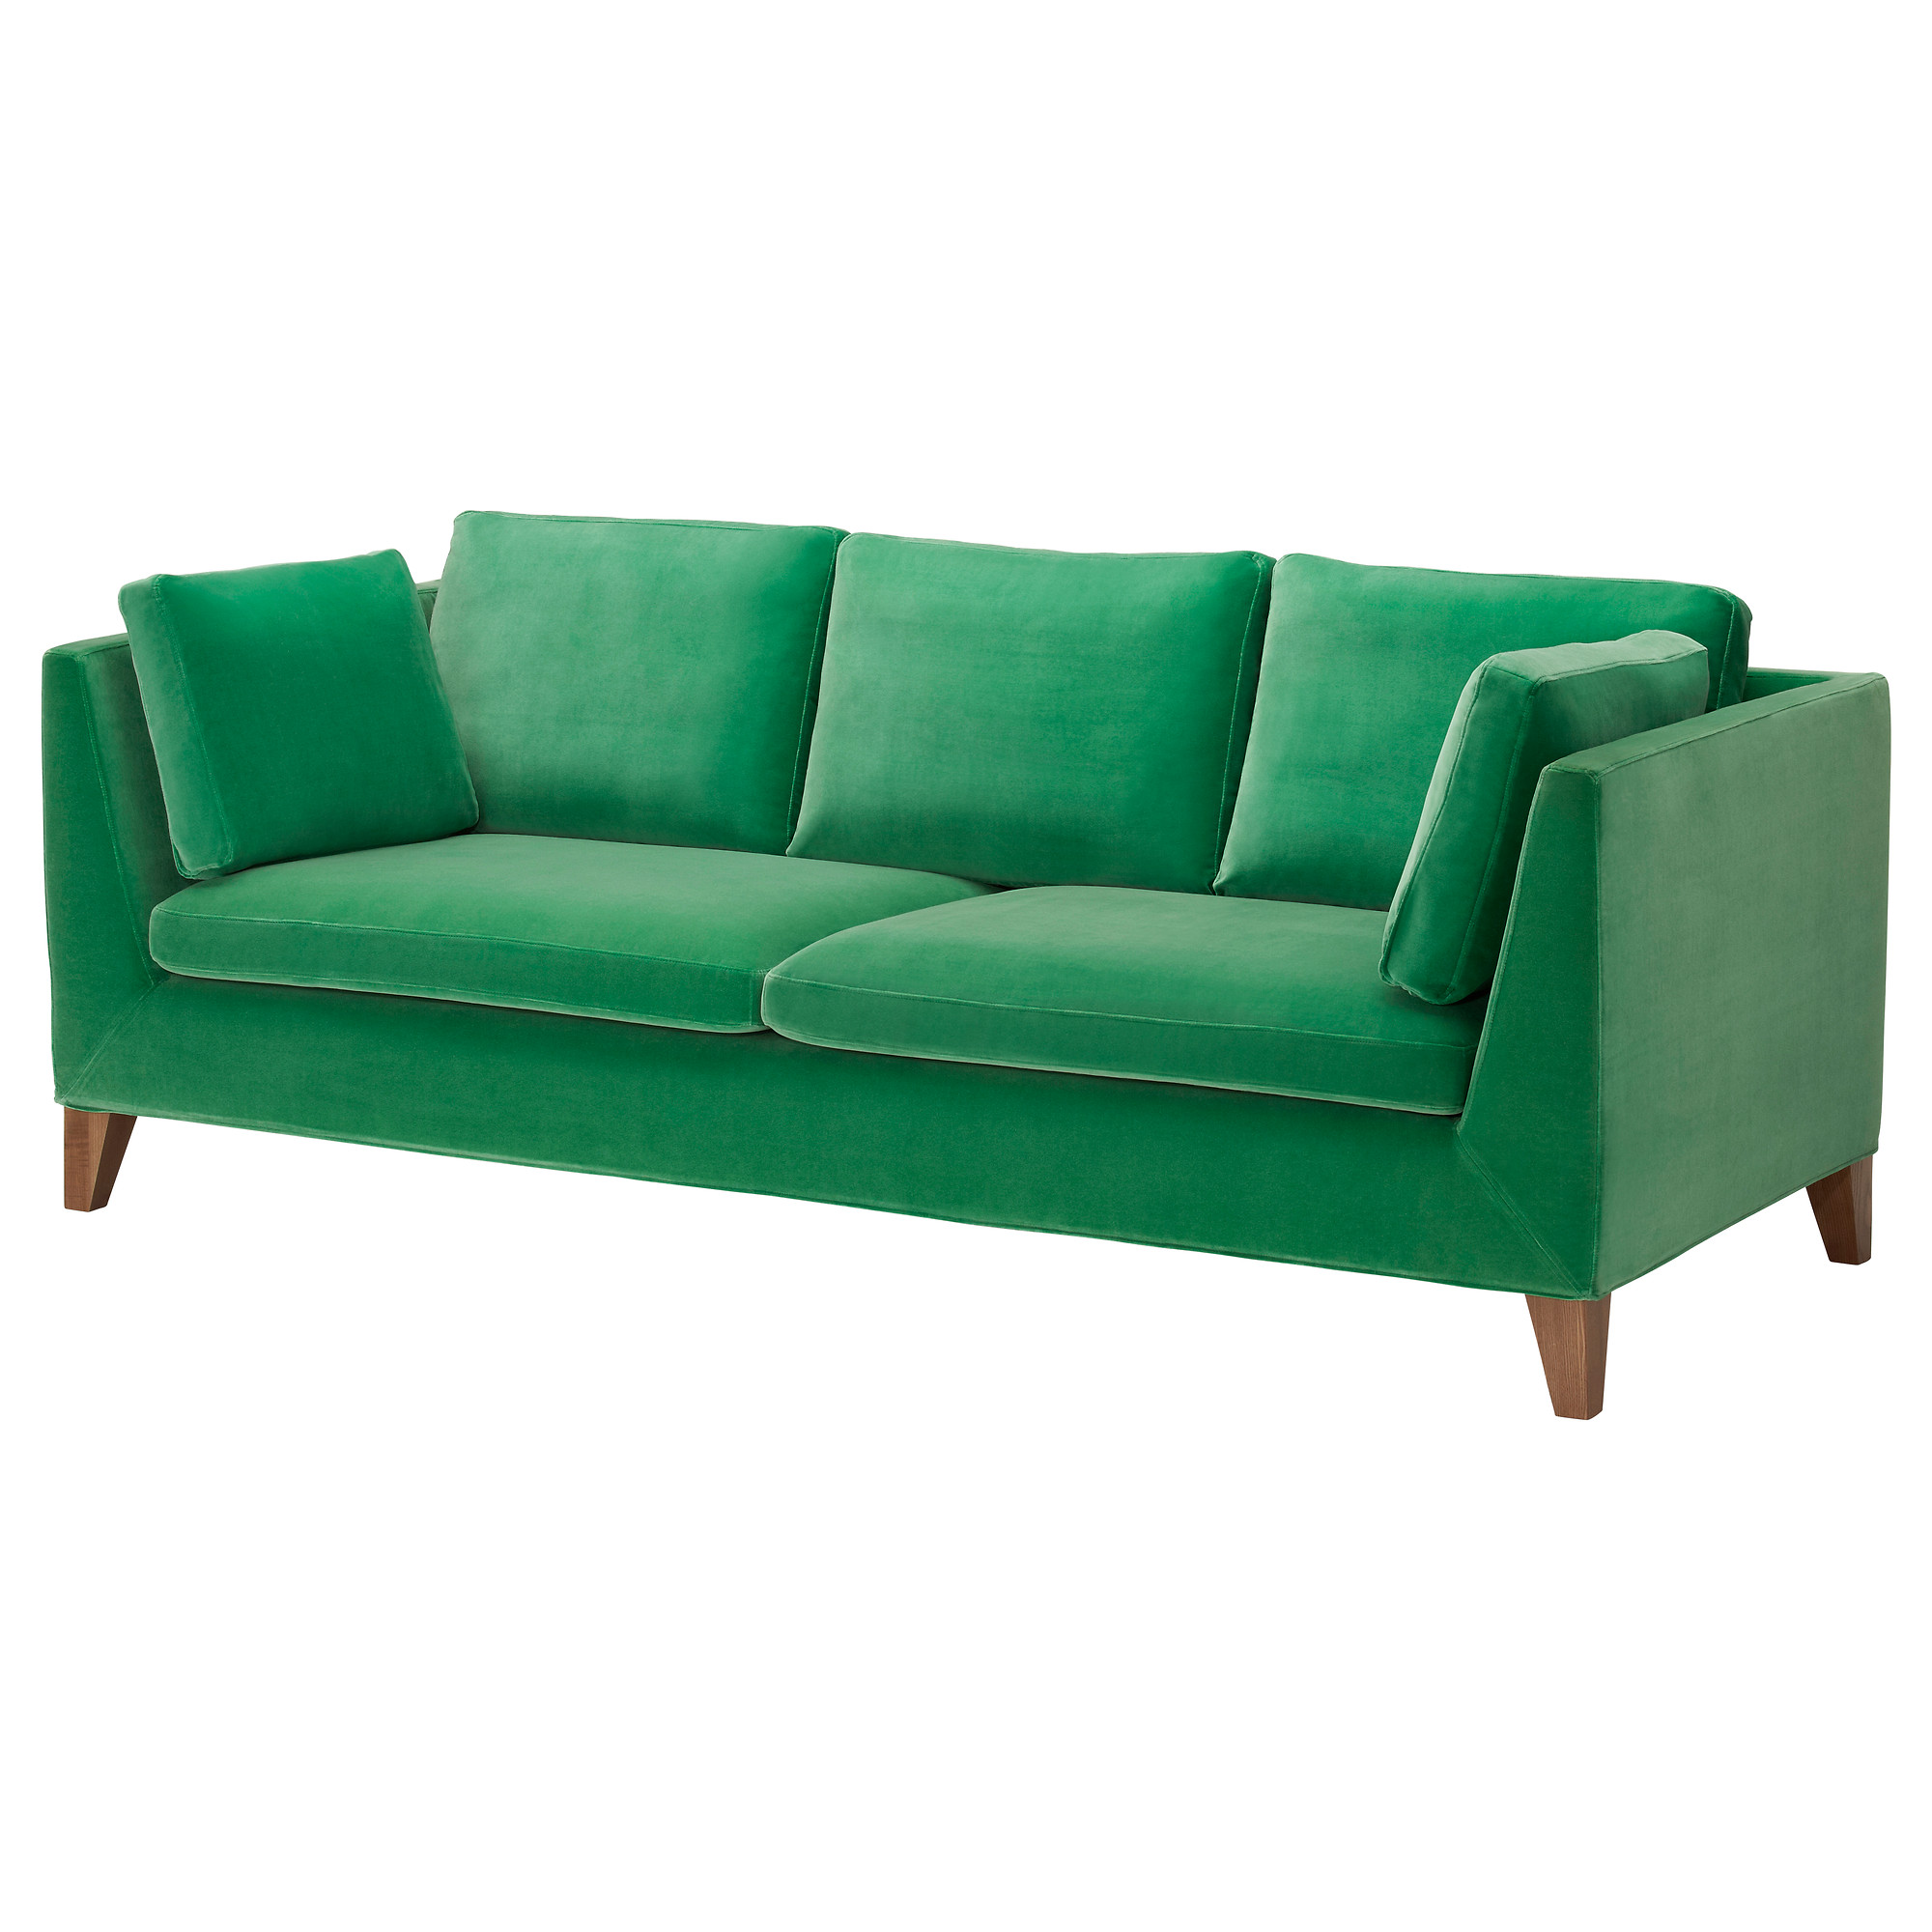 Sofa Couch Home Decorating Ideas Splendid Midcentury Furniture.